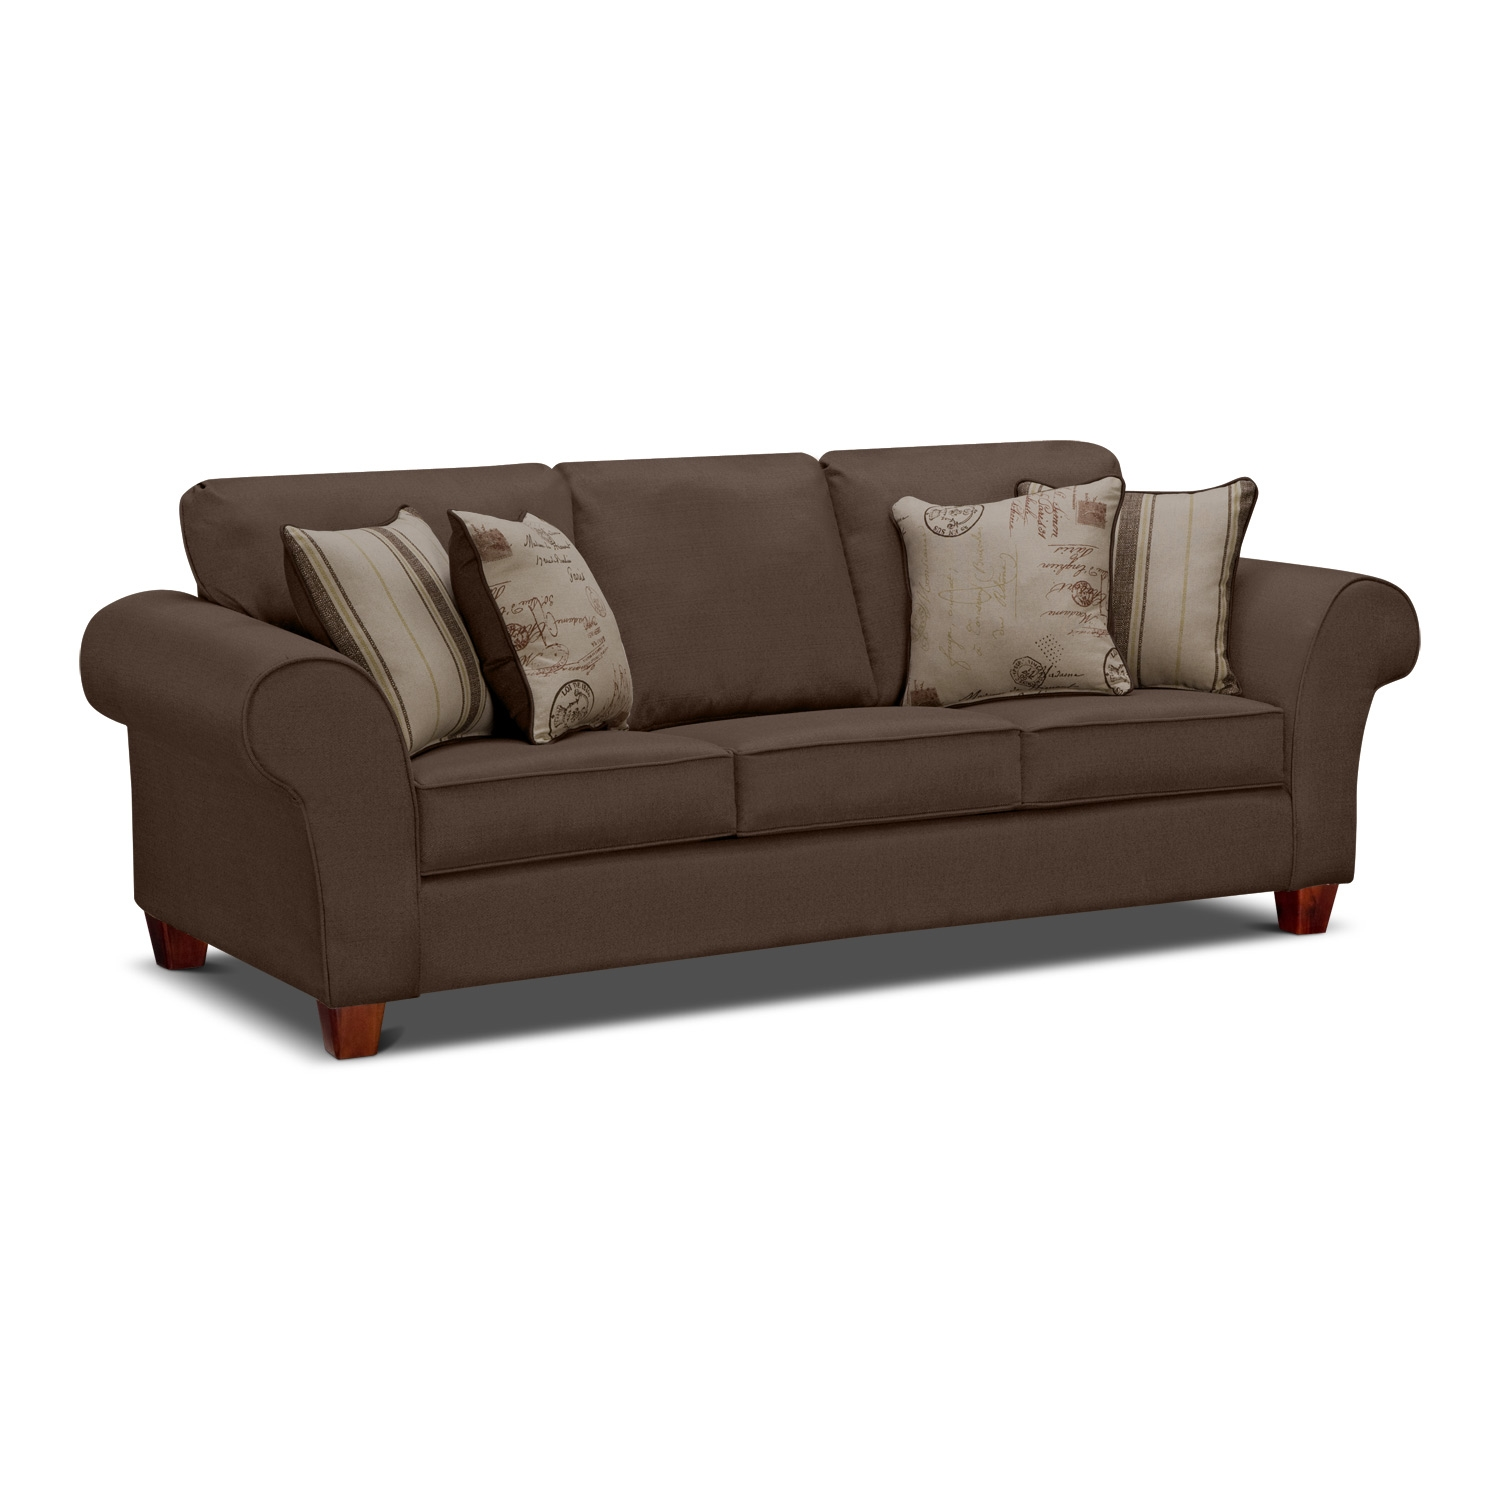 Sofas on sale ikea couch sofa ideas interior design for Affordable couches for sale